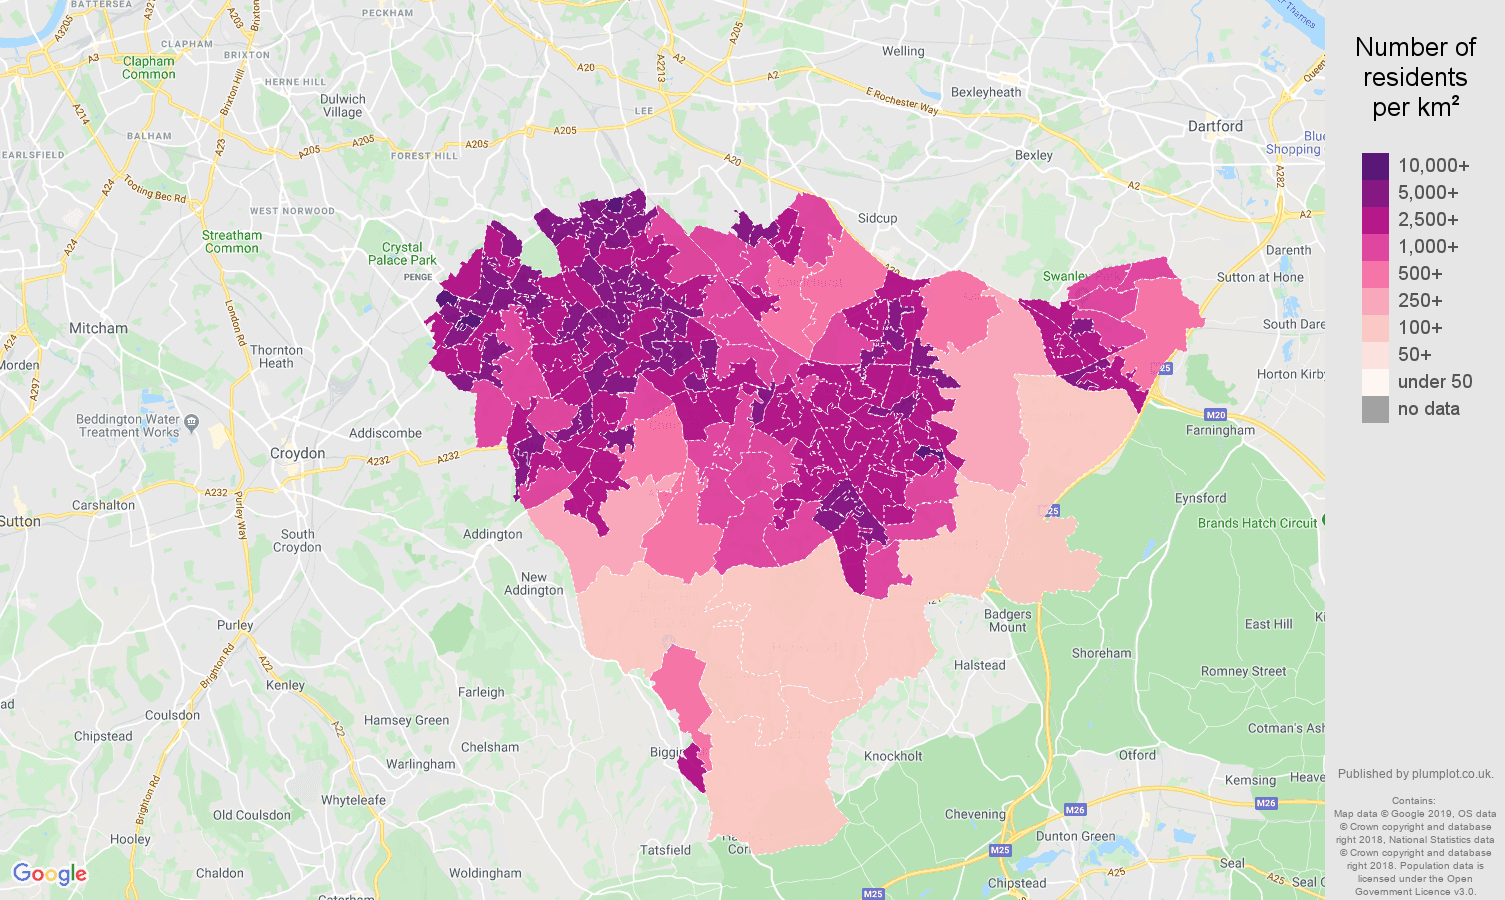 Bromley population density map